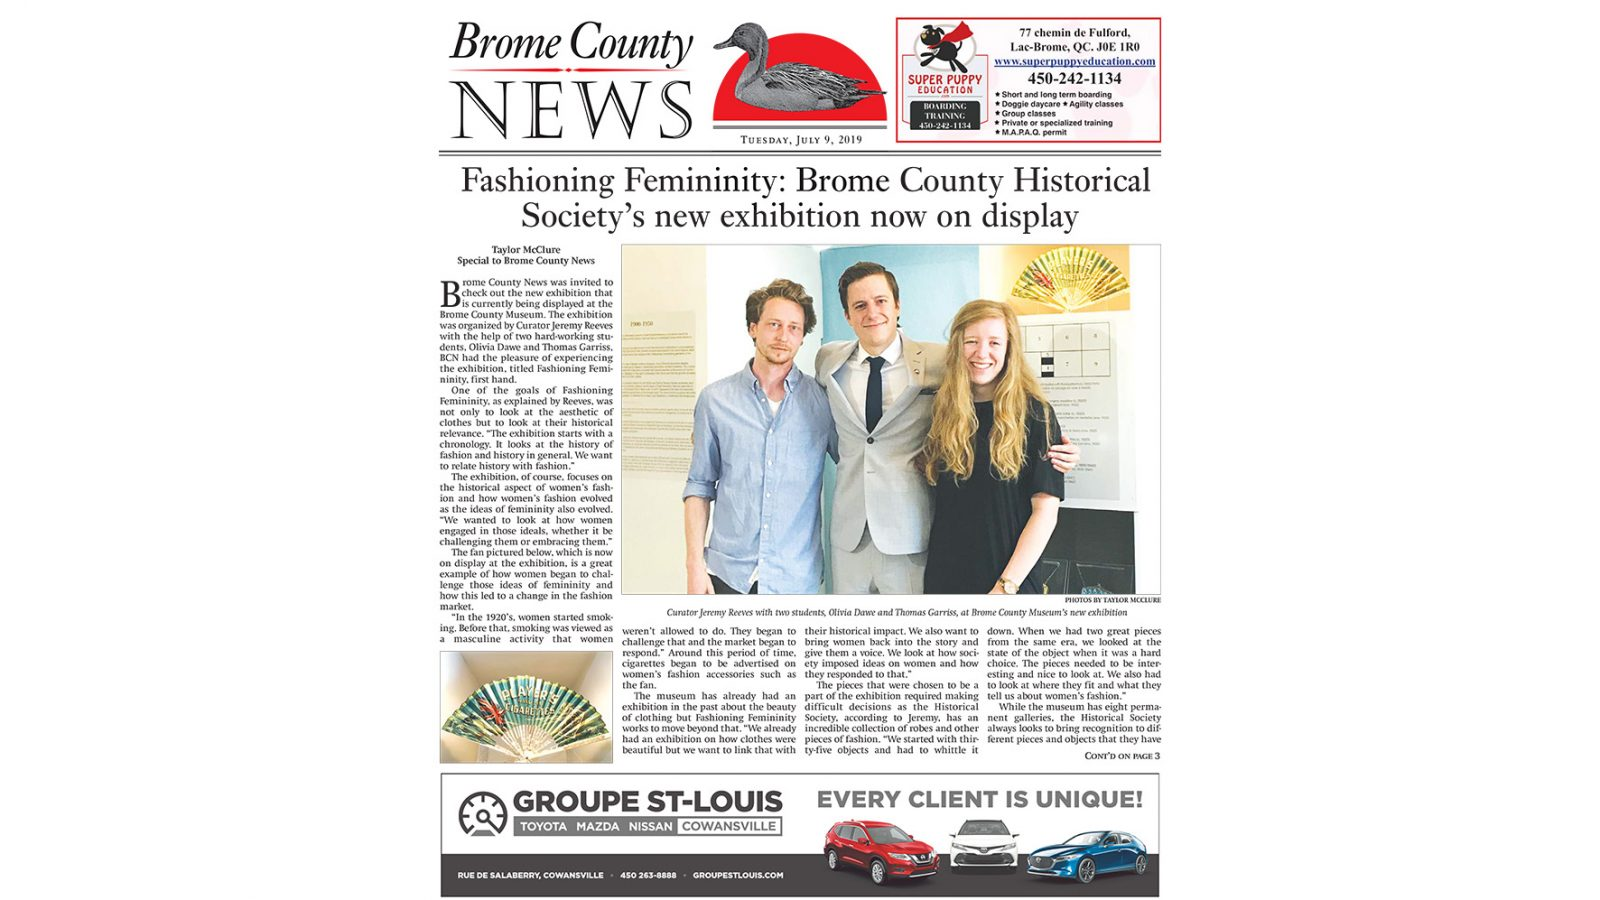 Brome County News – July 9, 2019 edition